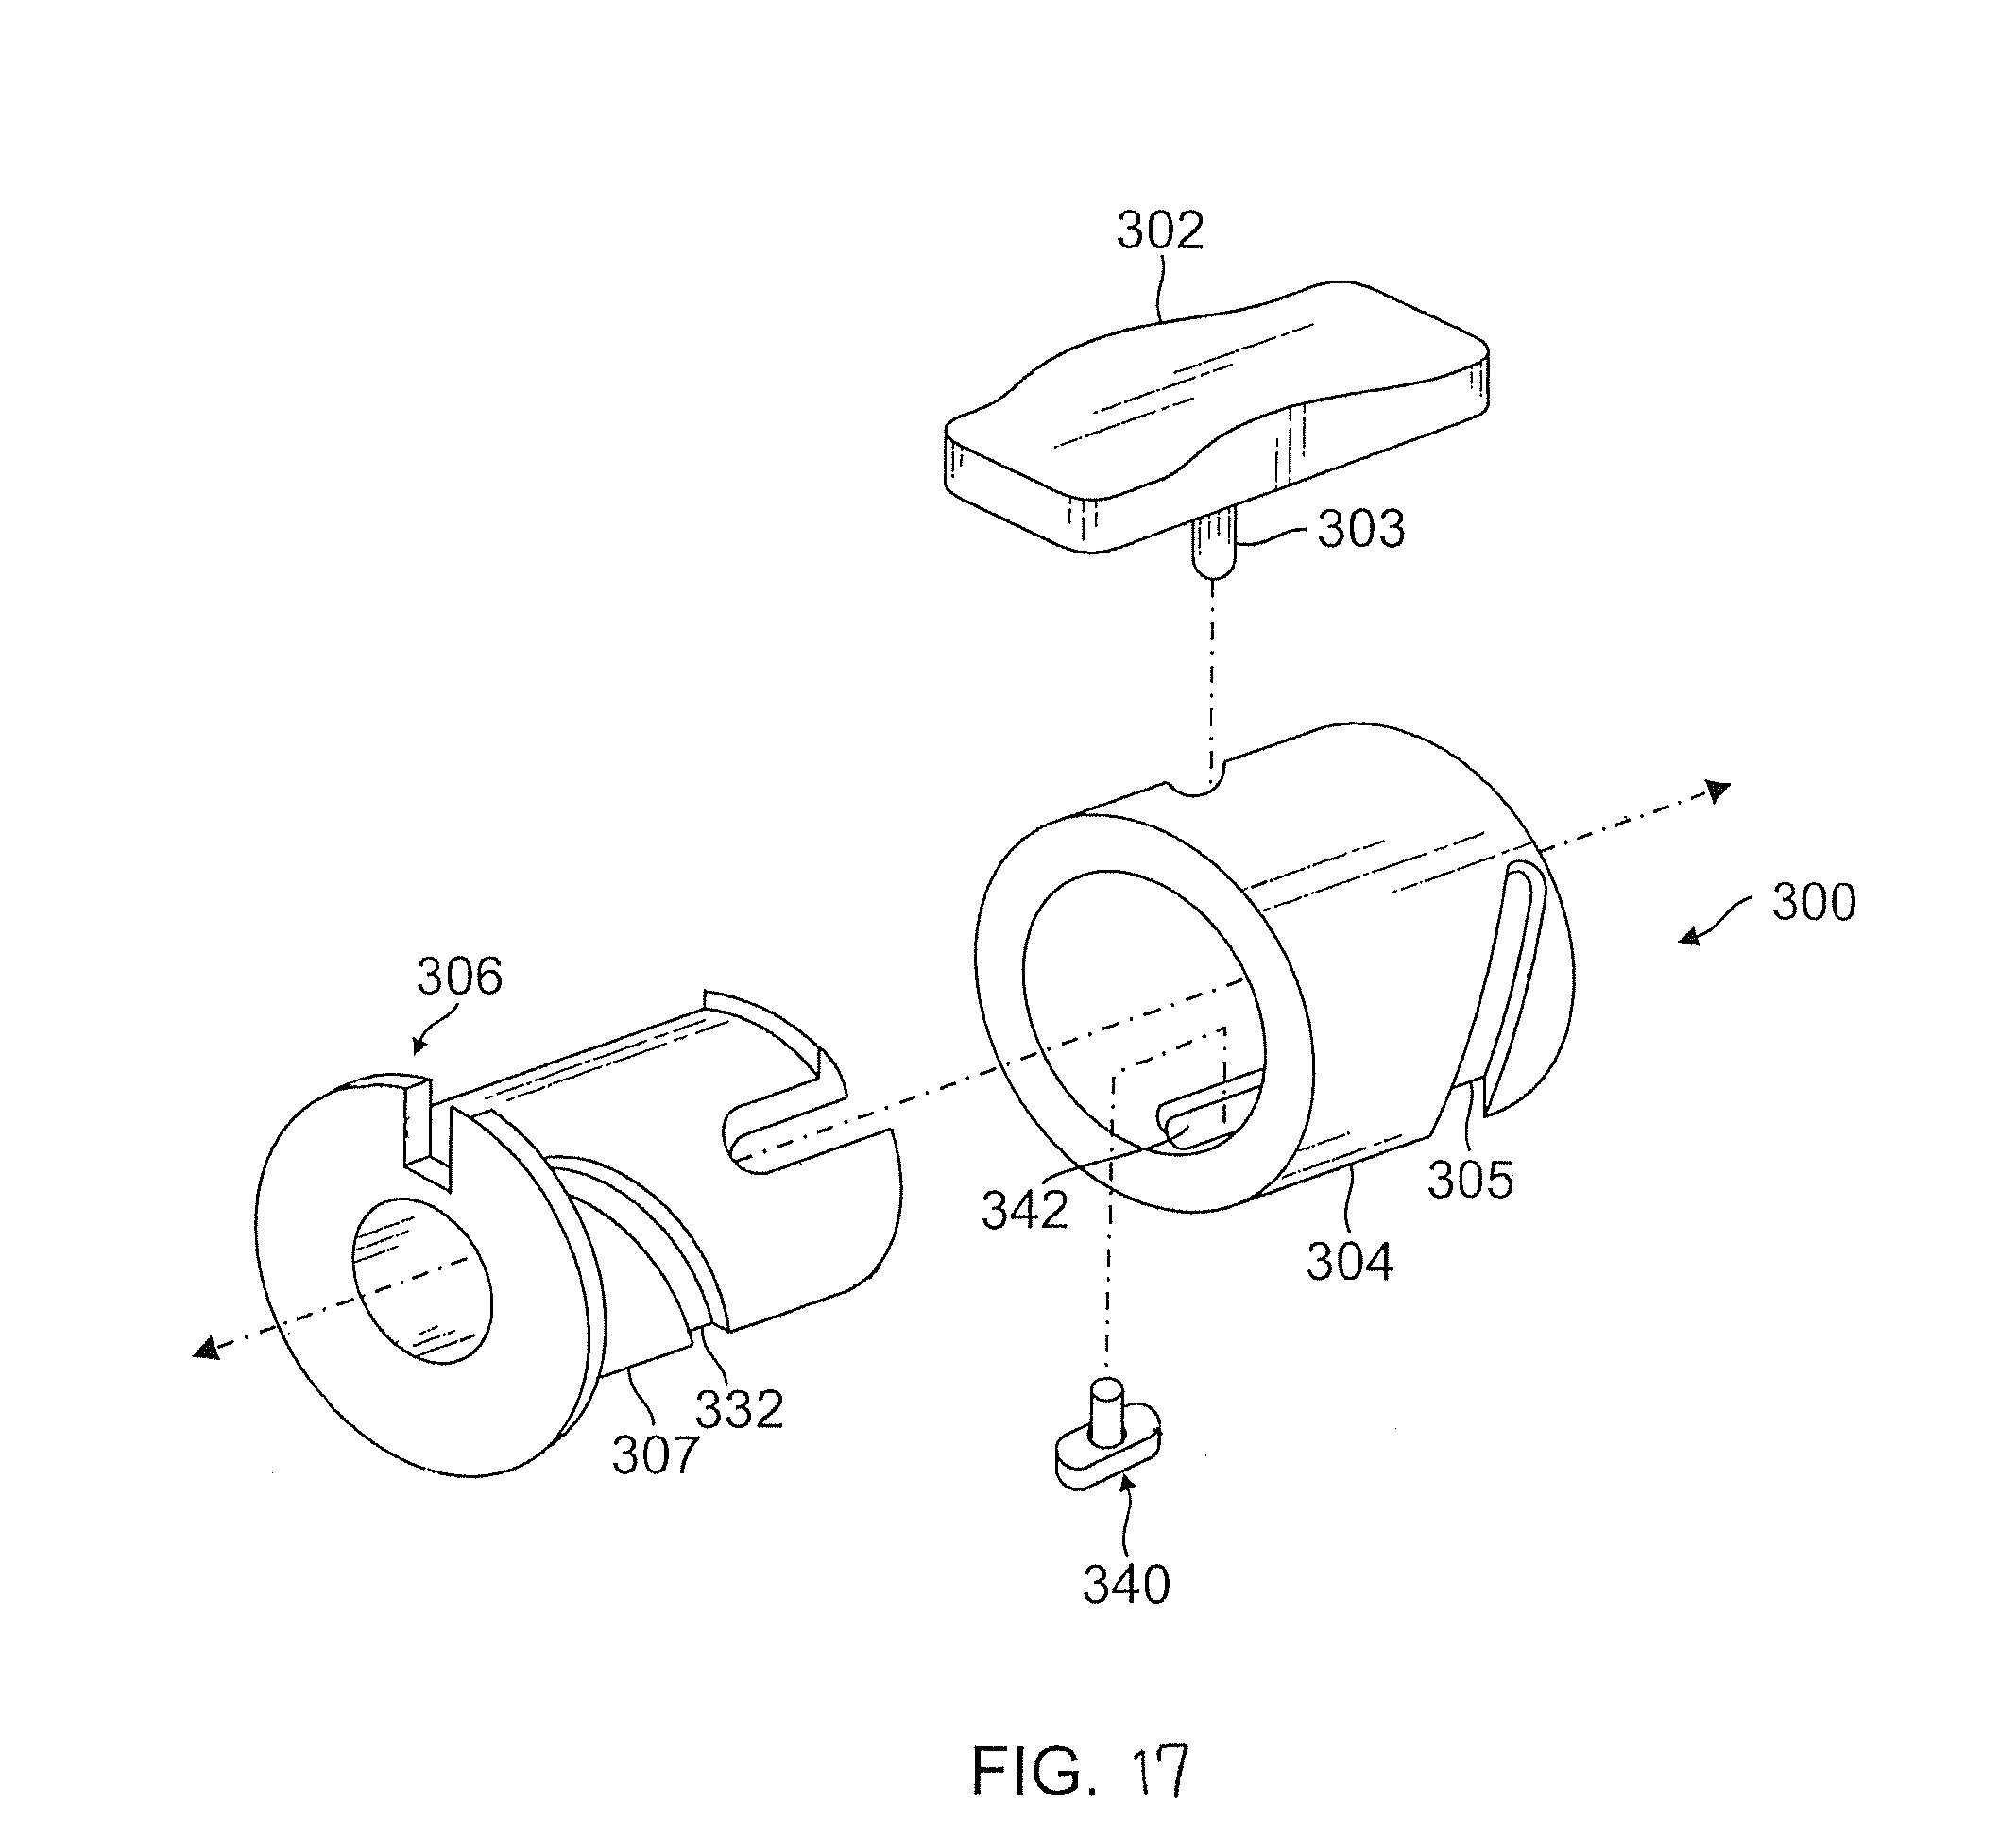 patente us20130085360 - mapping catheter with spiral electrode assembly